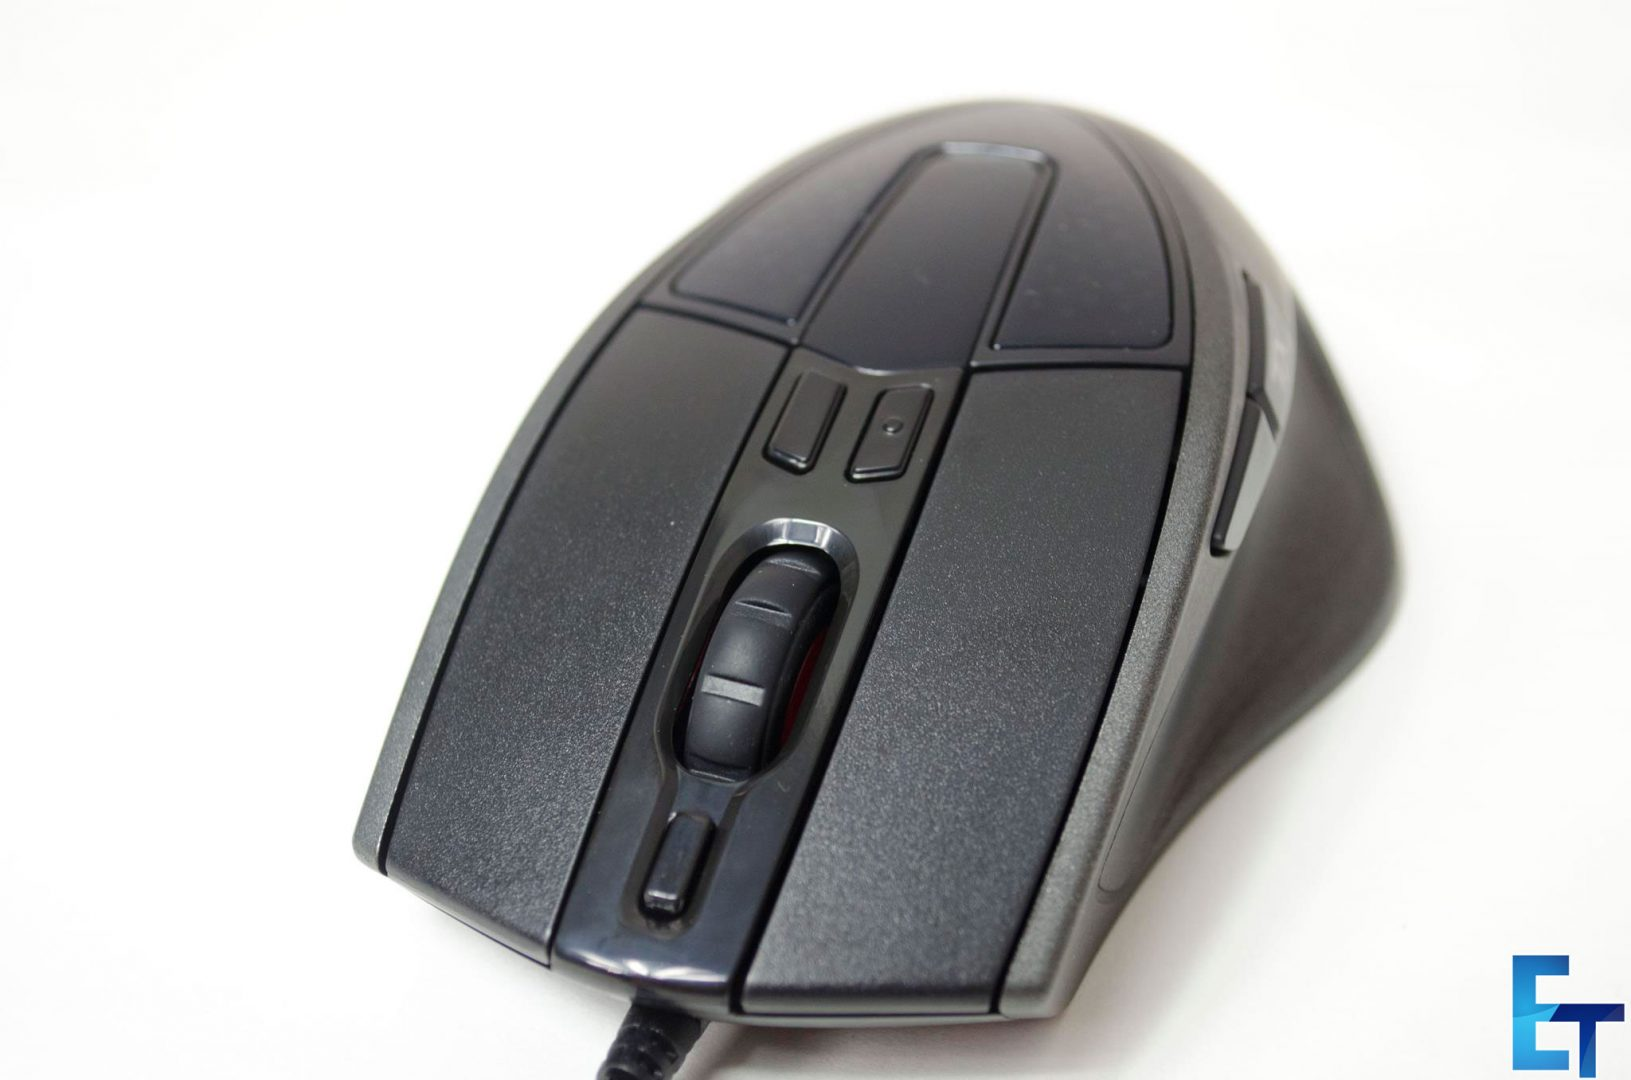 Cooler-Master-Sentinel-III-Ergonomic-Gaming-Mouse-Review_11